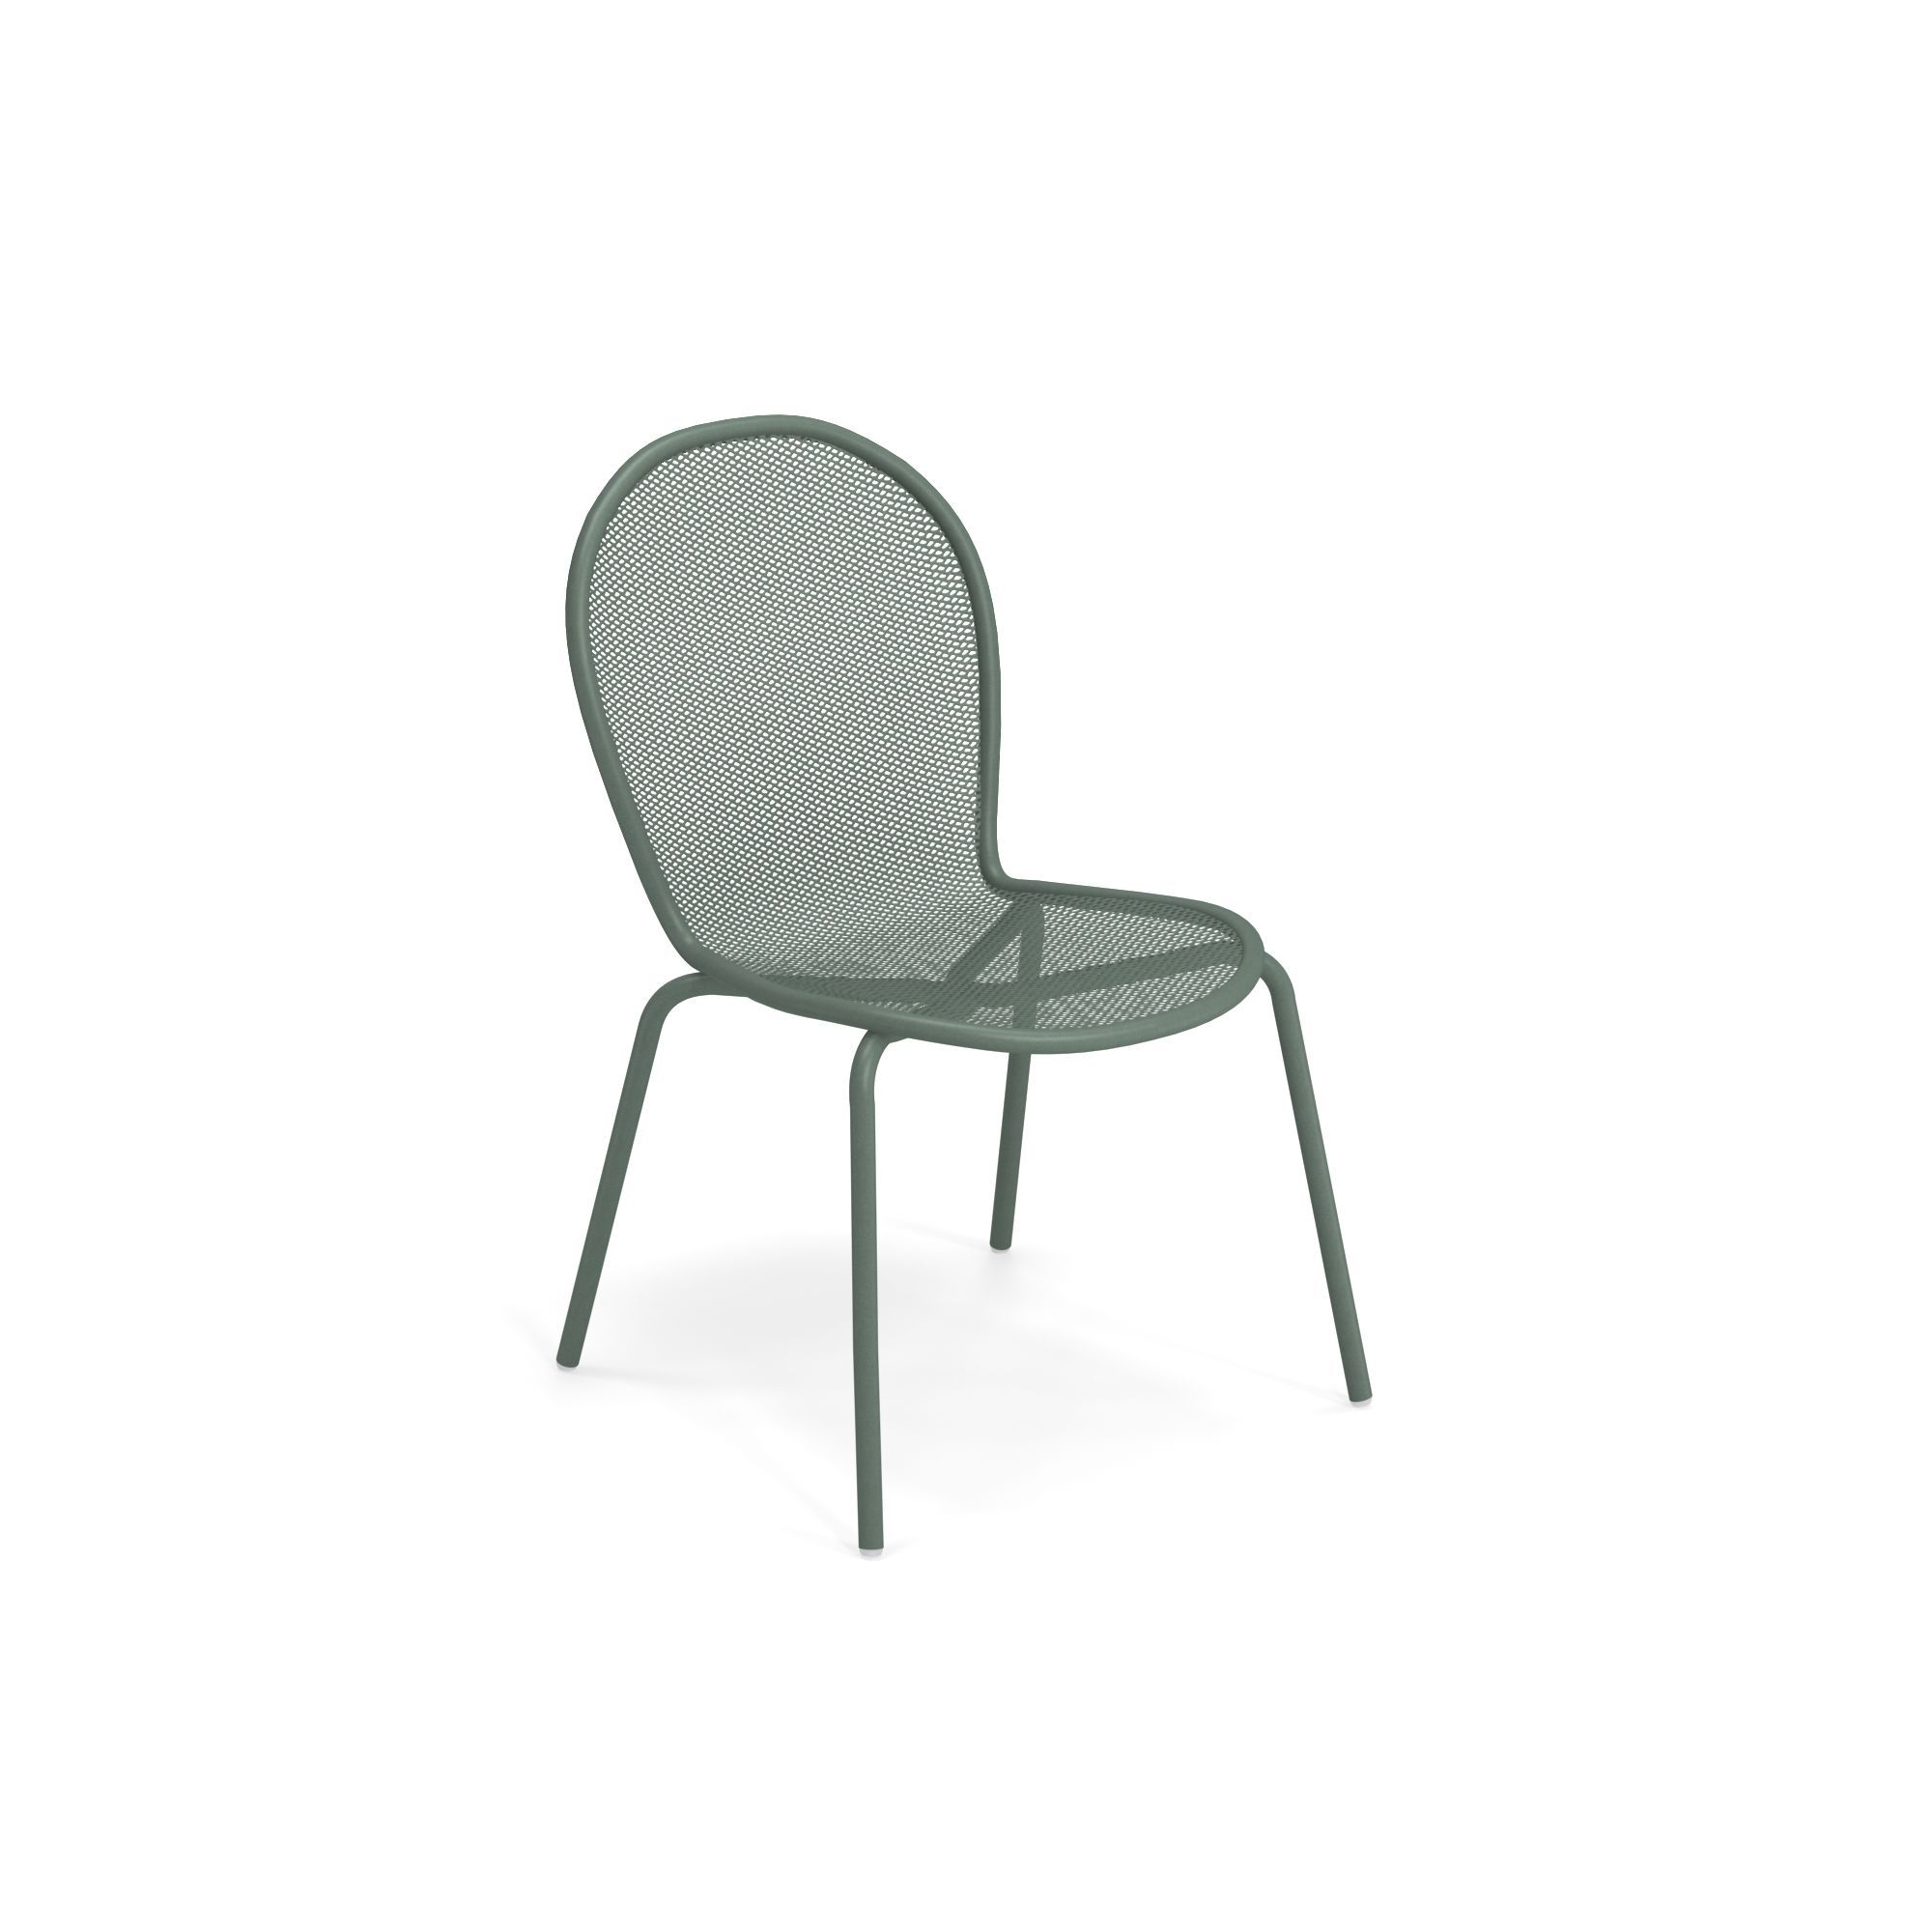 emuamericas, llc 111-75 chair, side, stacking, outdoor